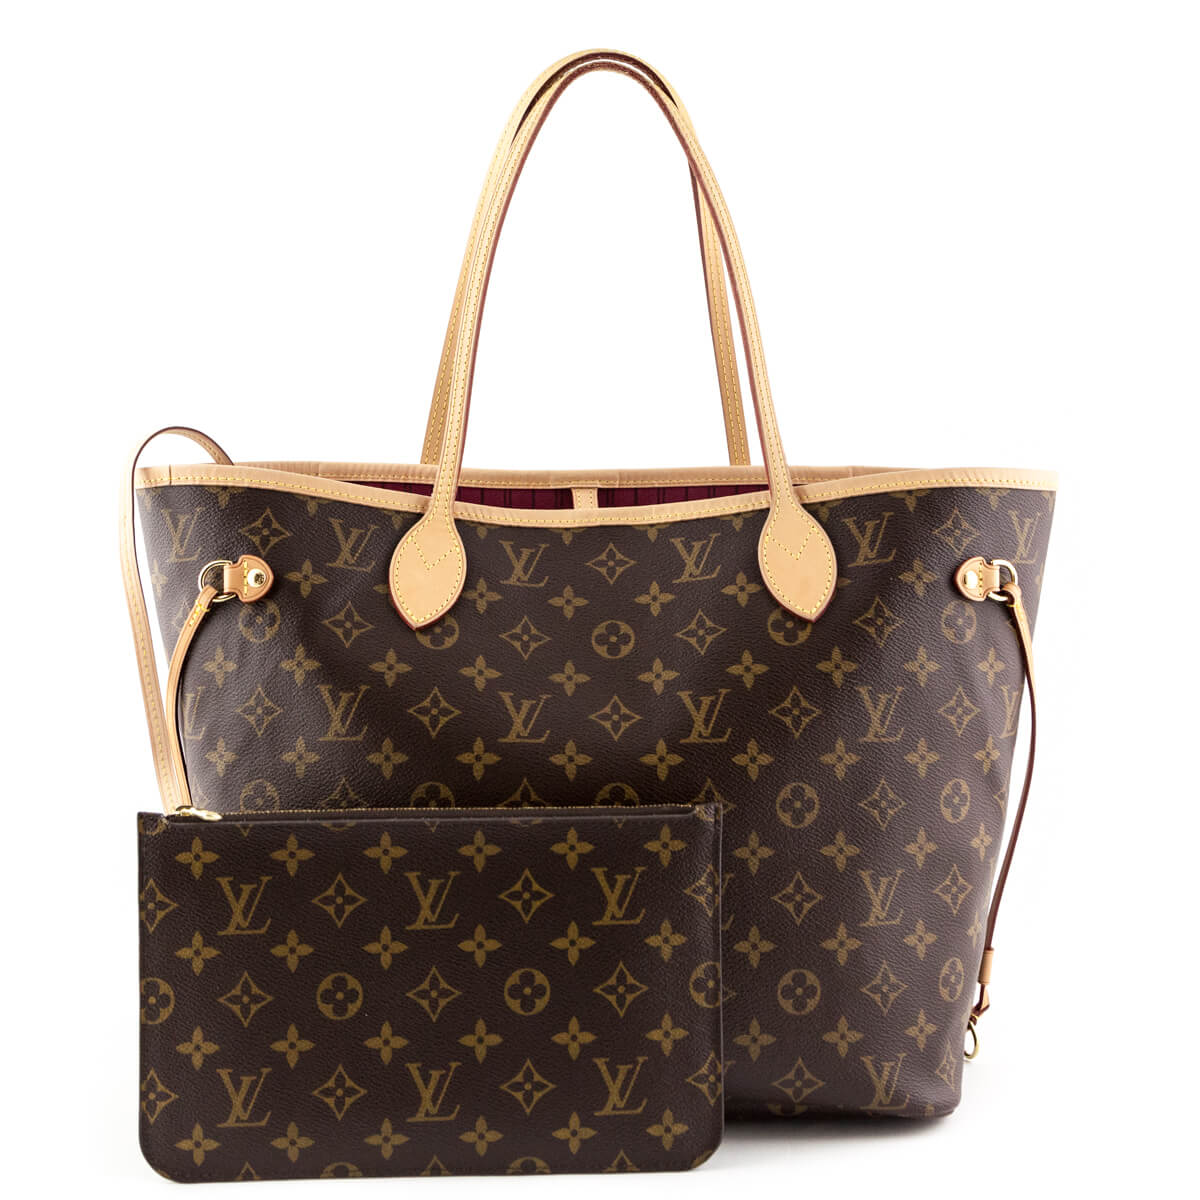 Louis Vuitton Monogram Neverfull MM with Pouch - LOVE that BAG - Preowned  Authentic Designer Handbags ... a1ebadd836b5a